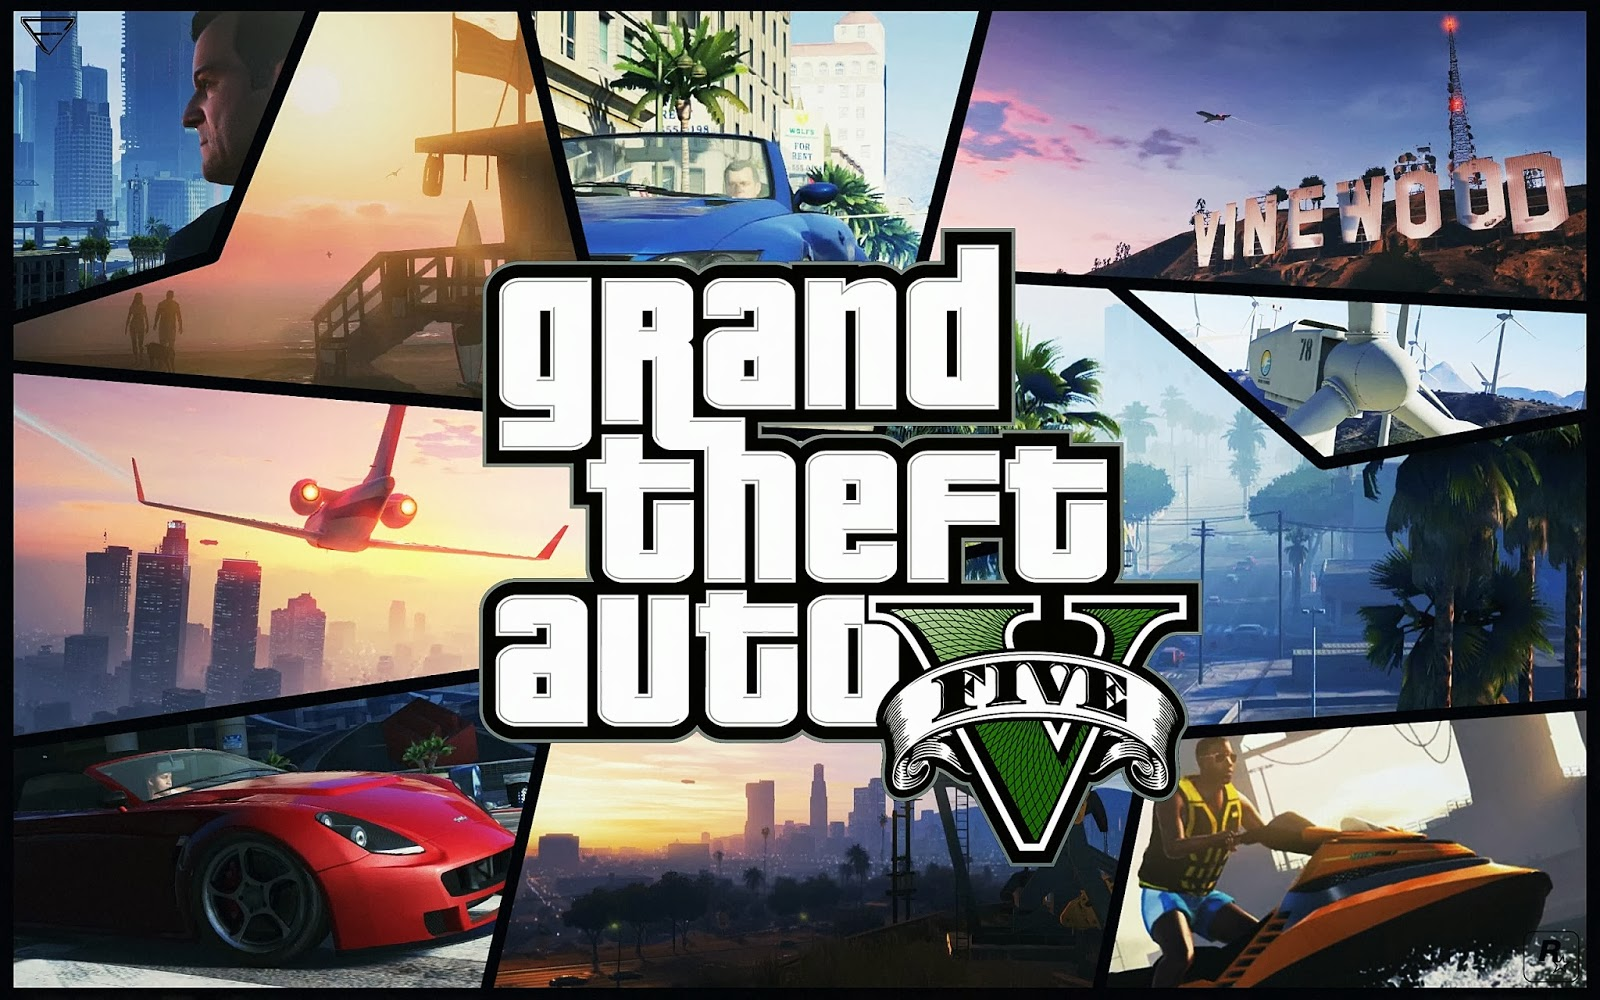 Cool GTA V HD Wallpapers 2015 | photosforwallpapers 2017